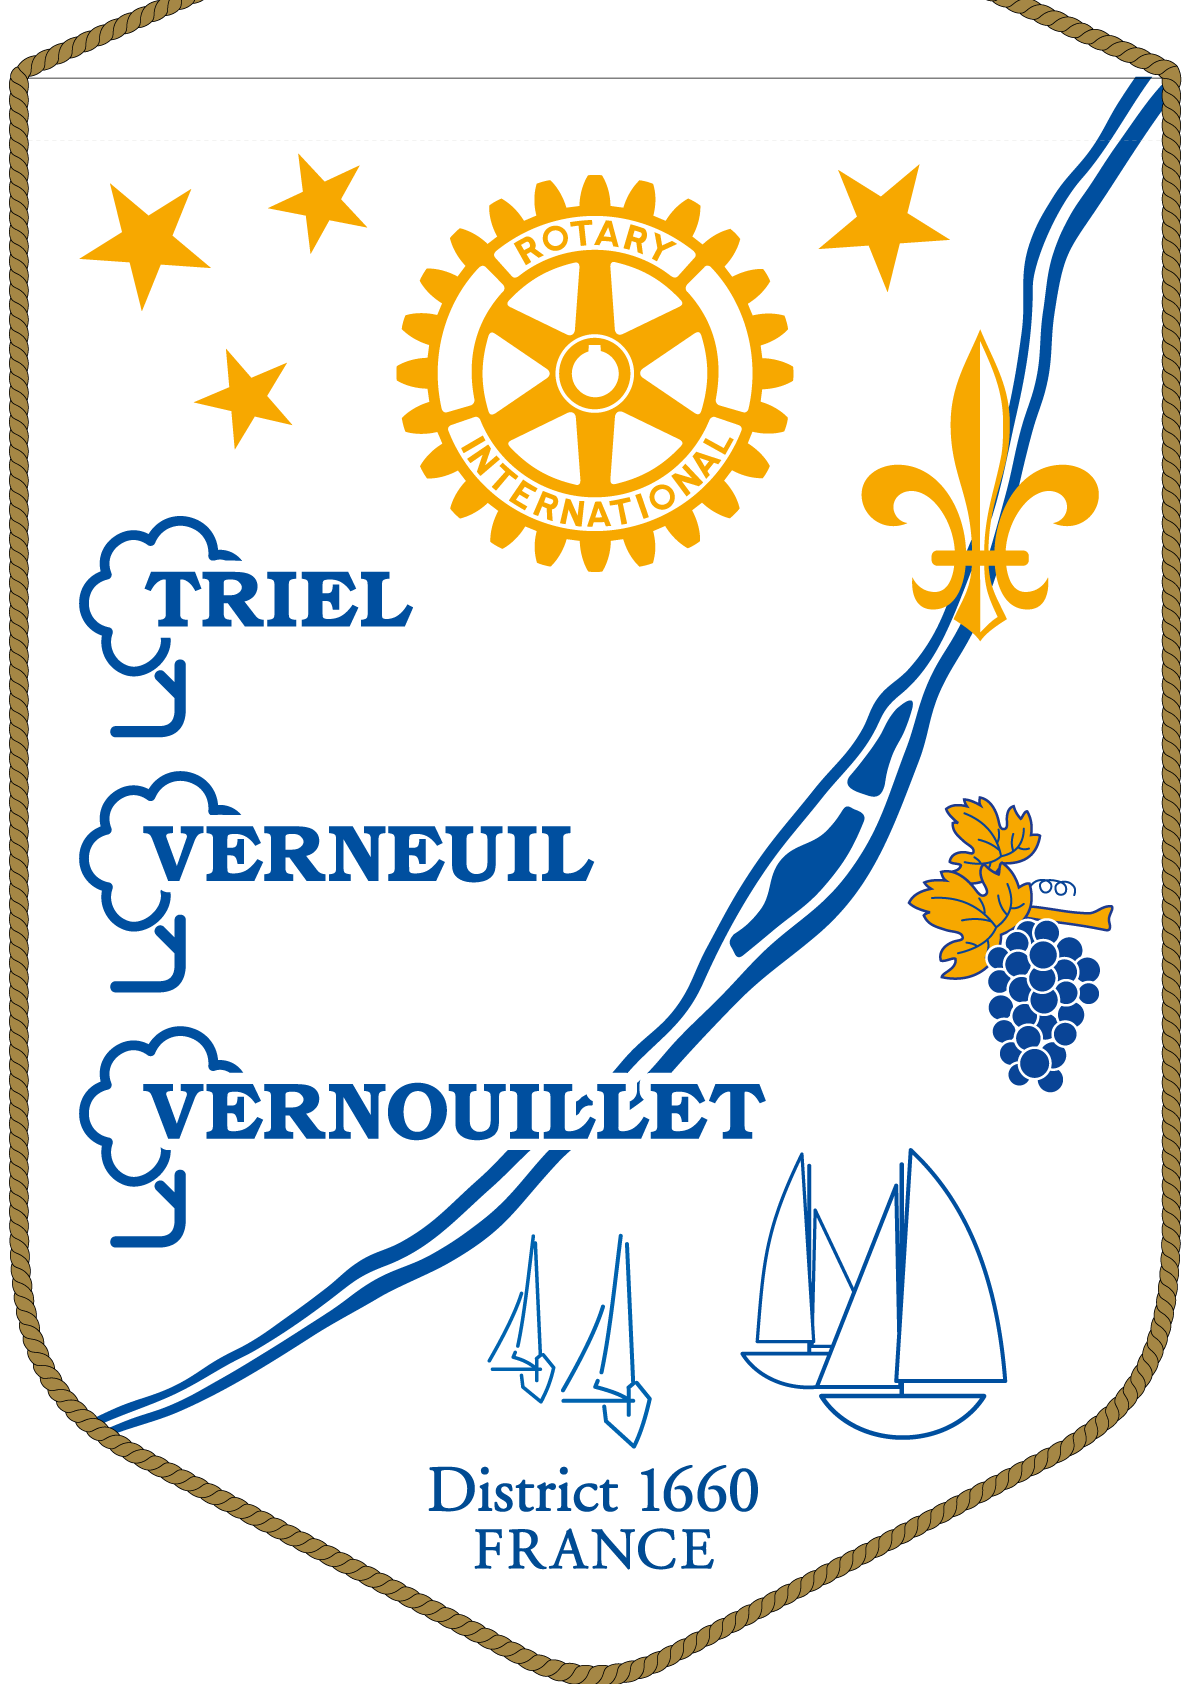 FANION ROTARY CLUB TRIEL VERNEUIL VERNOUILLET